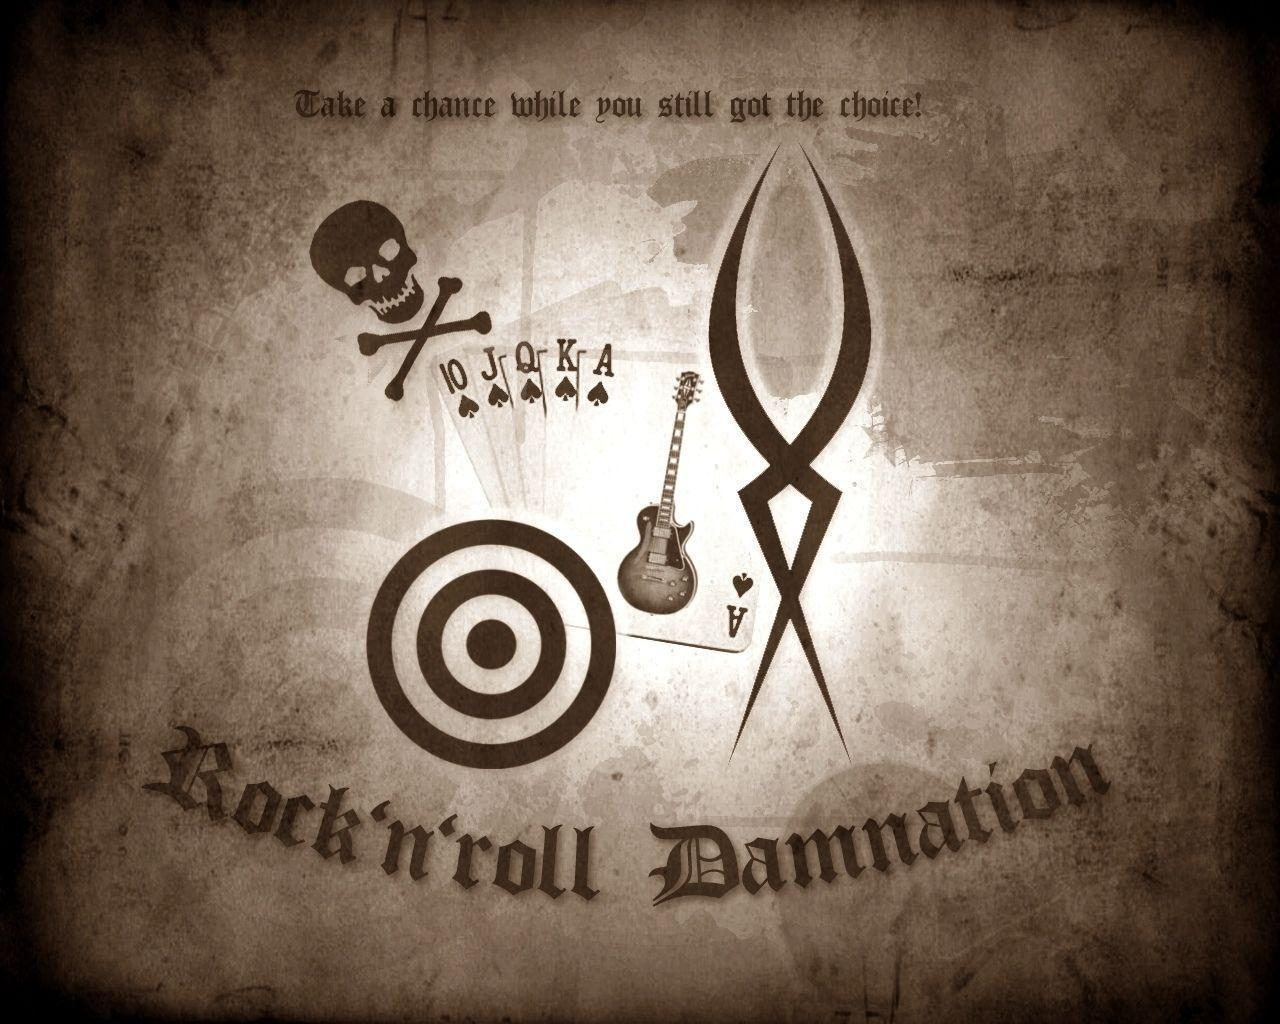 1 Rock'n'roll Damnation HD Wallpapers | Backgrounds - Wallpaper Abyss